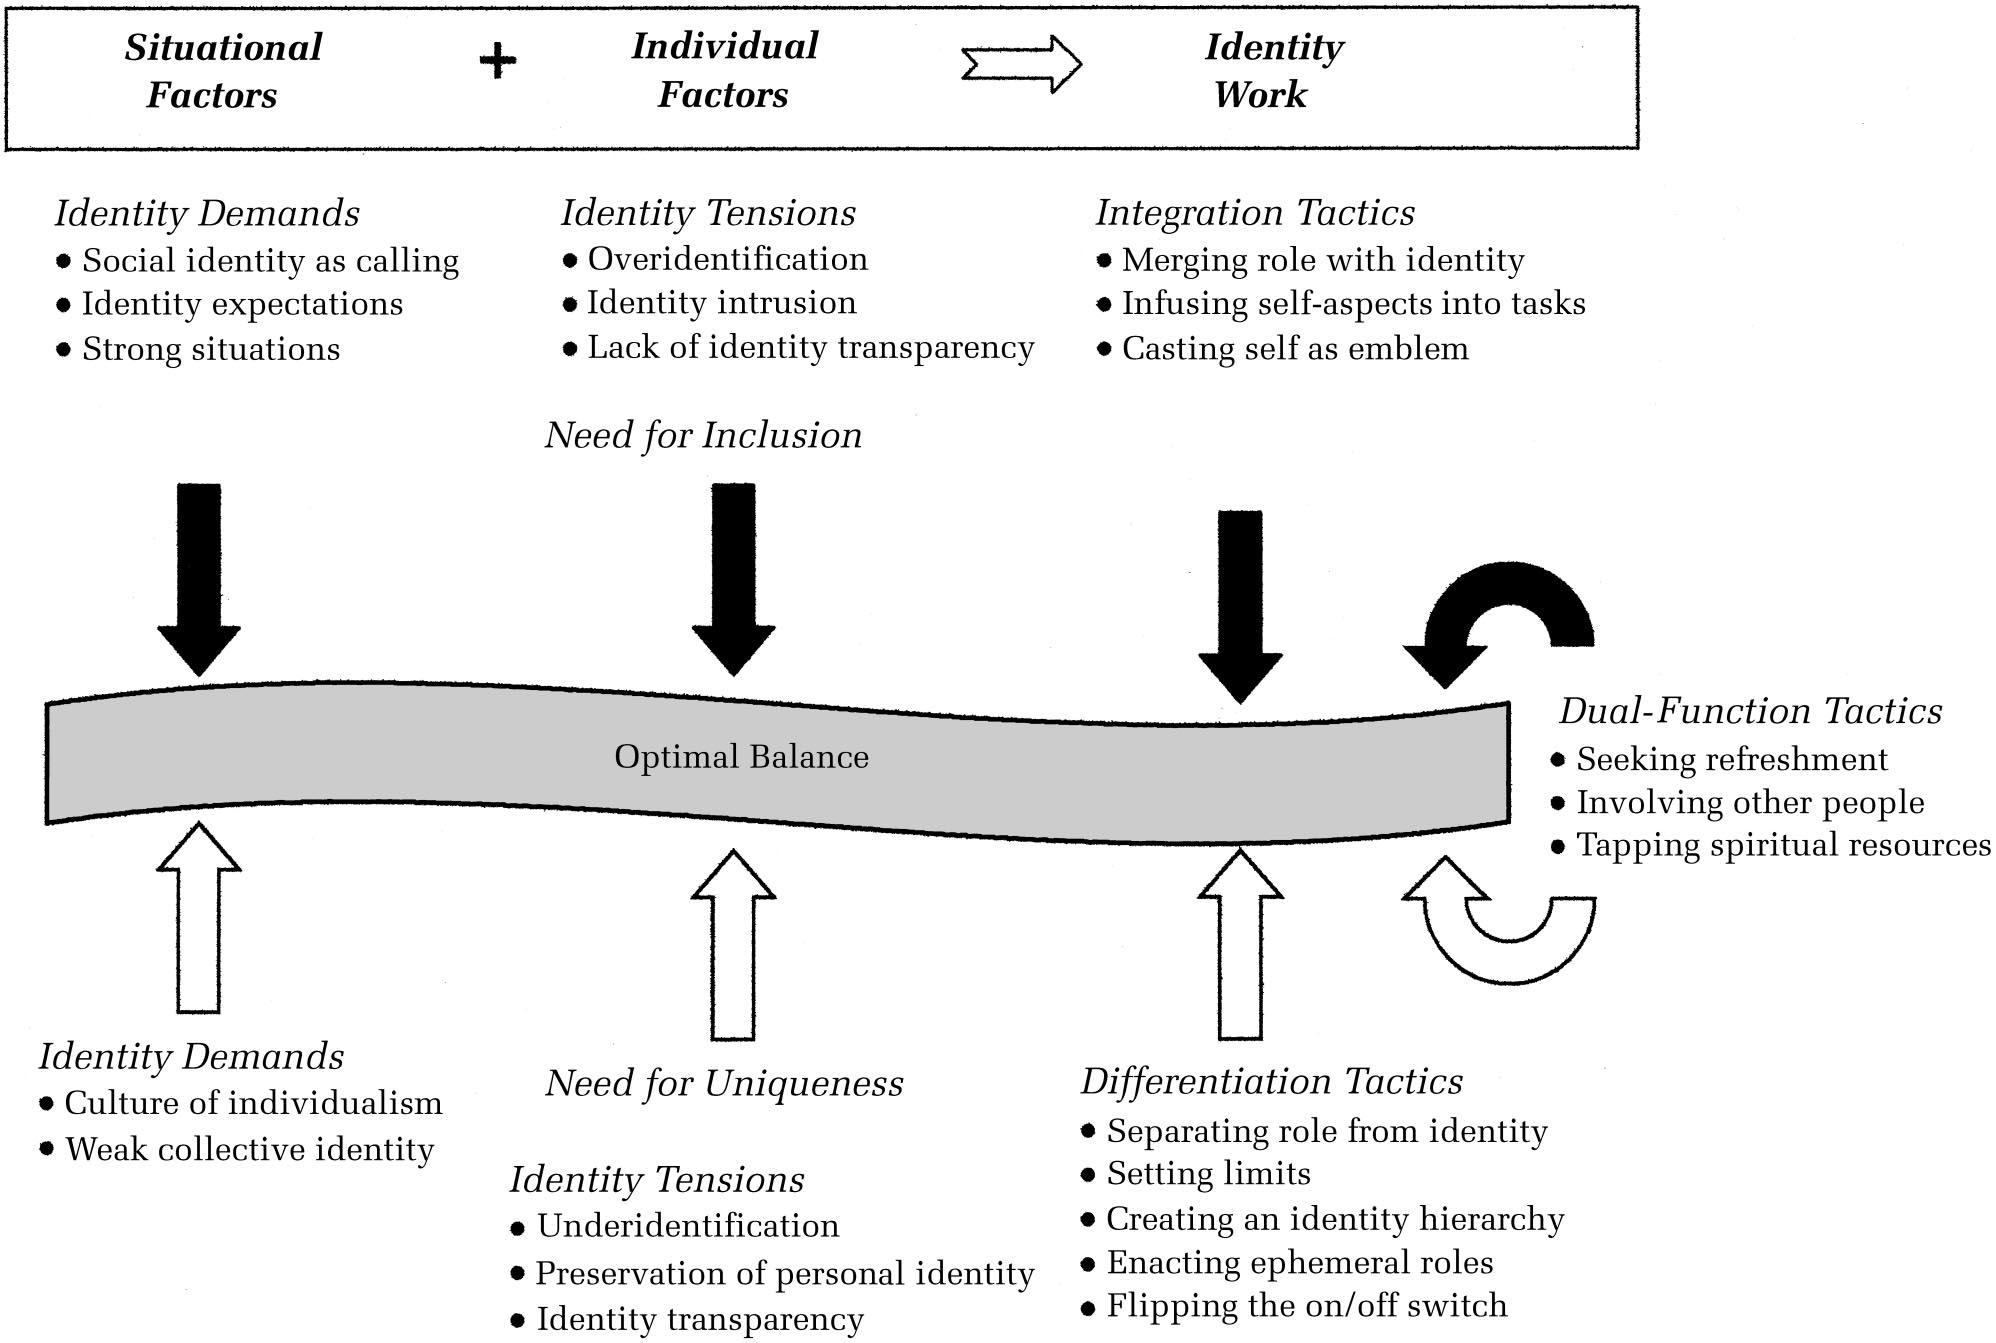 1038 Academy of Management Journal October FIGURE 1 A Model of Identity Work toward Optimal Balance counteract the opposing forces (as illustrated in the right column).